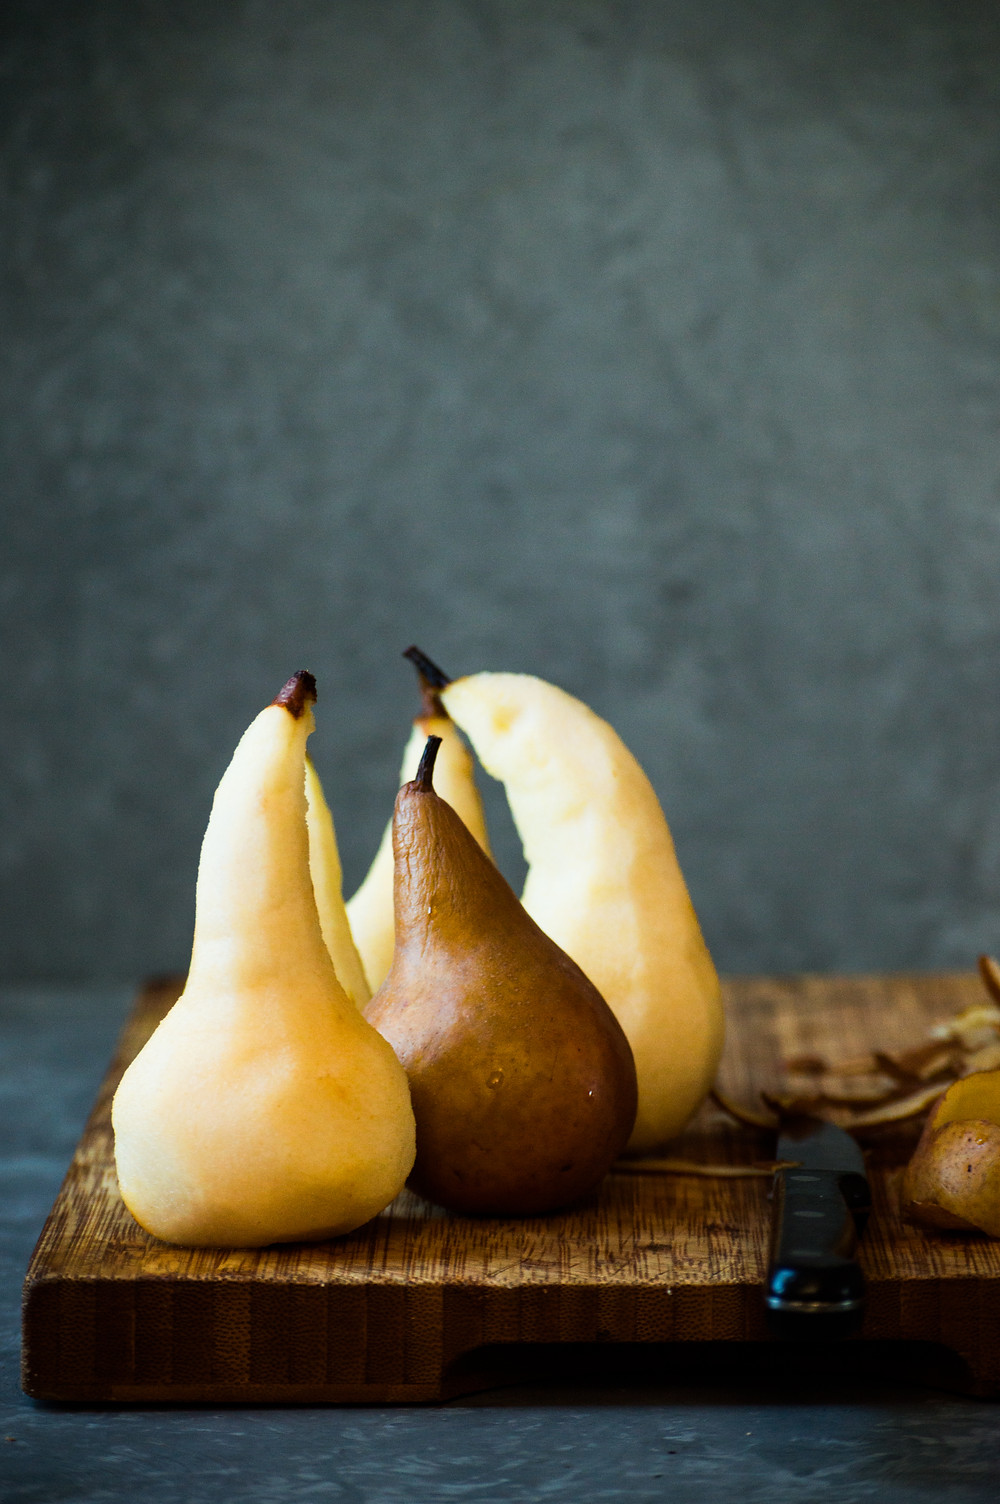 Pears, food photography, Organic Kitchen Gardens